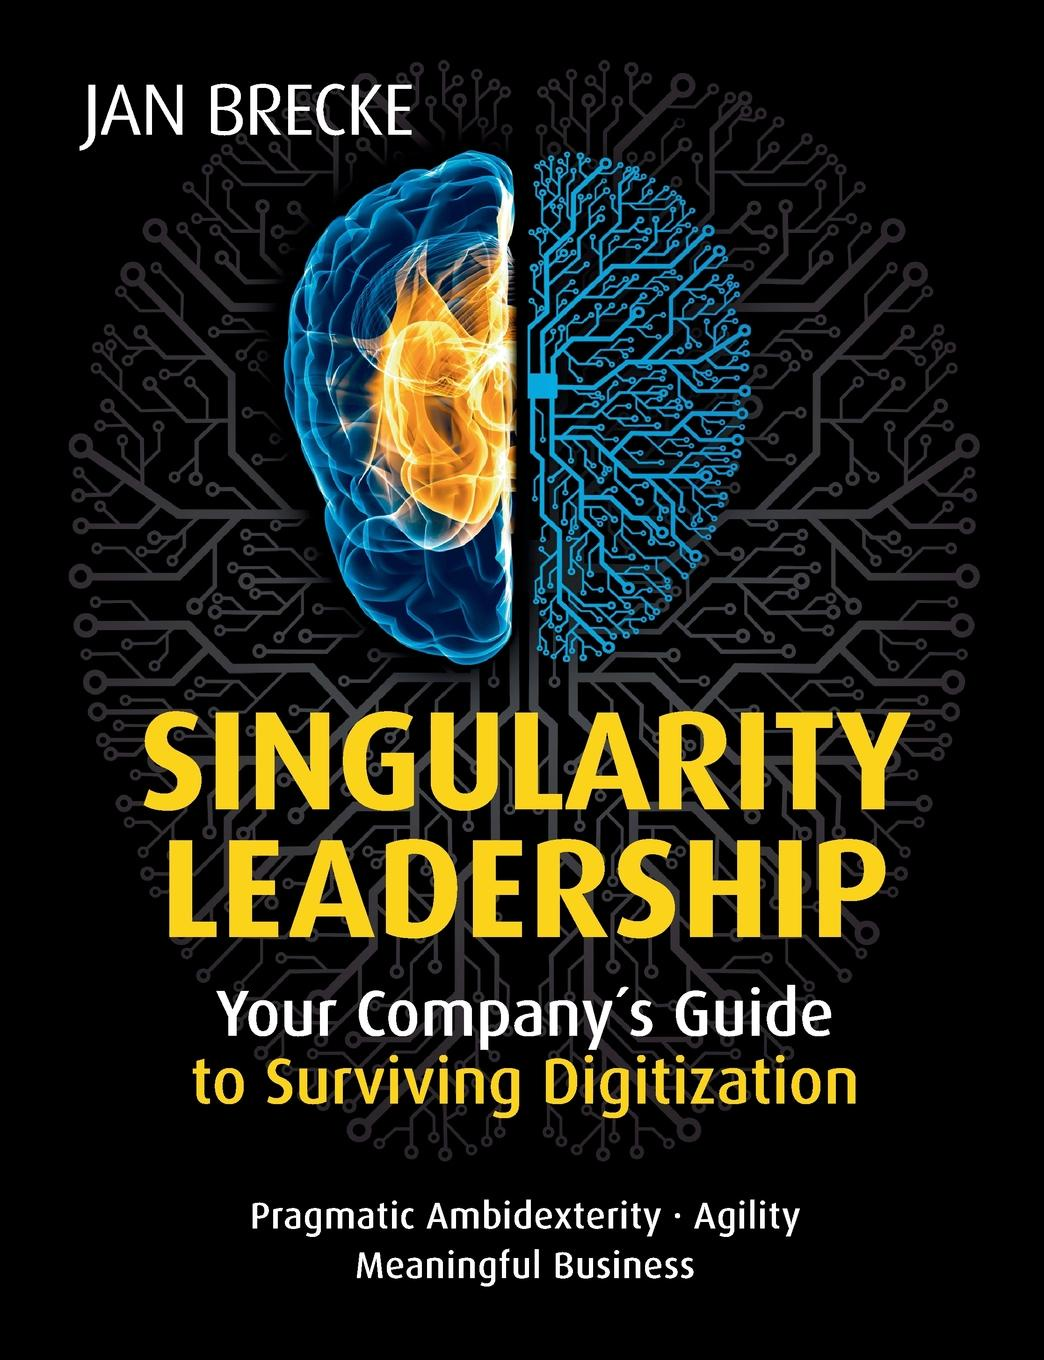 Jan Brecke Singularity Leadership. Your Company.s Guide to Surviving Digitization boris shulitski the ideological foundations of technological singularity